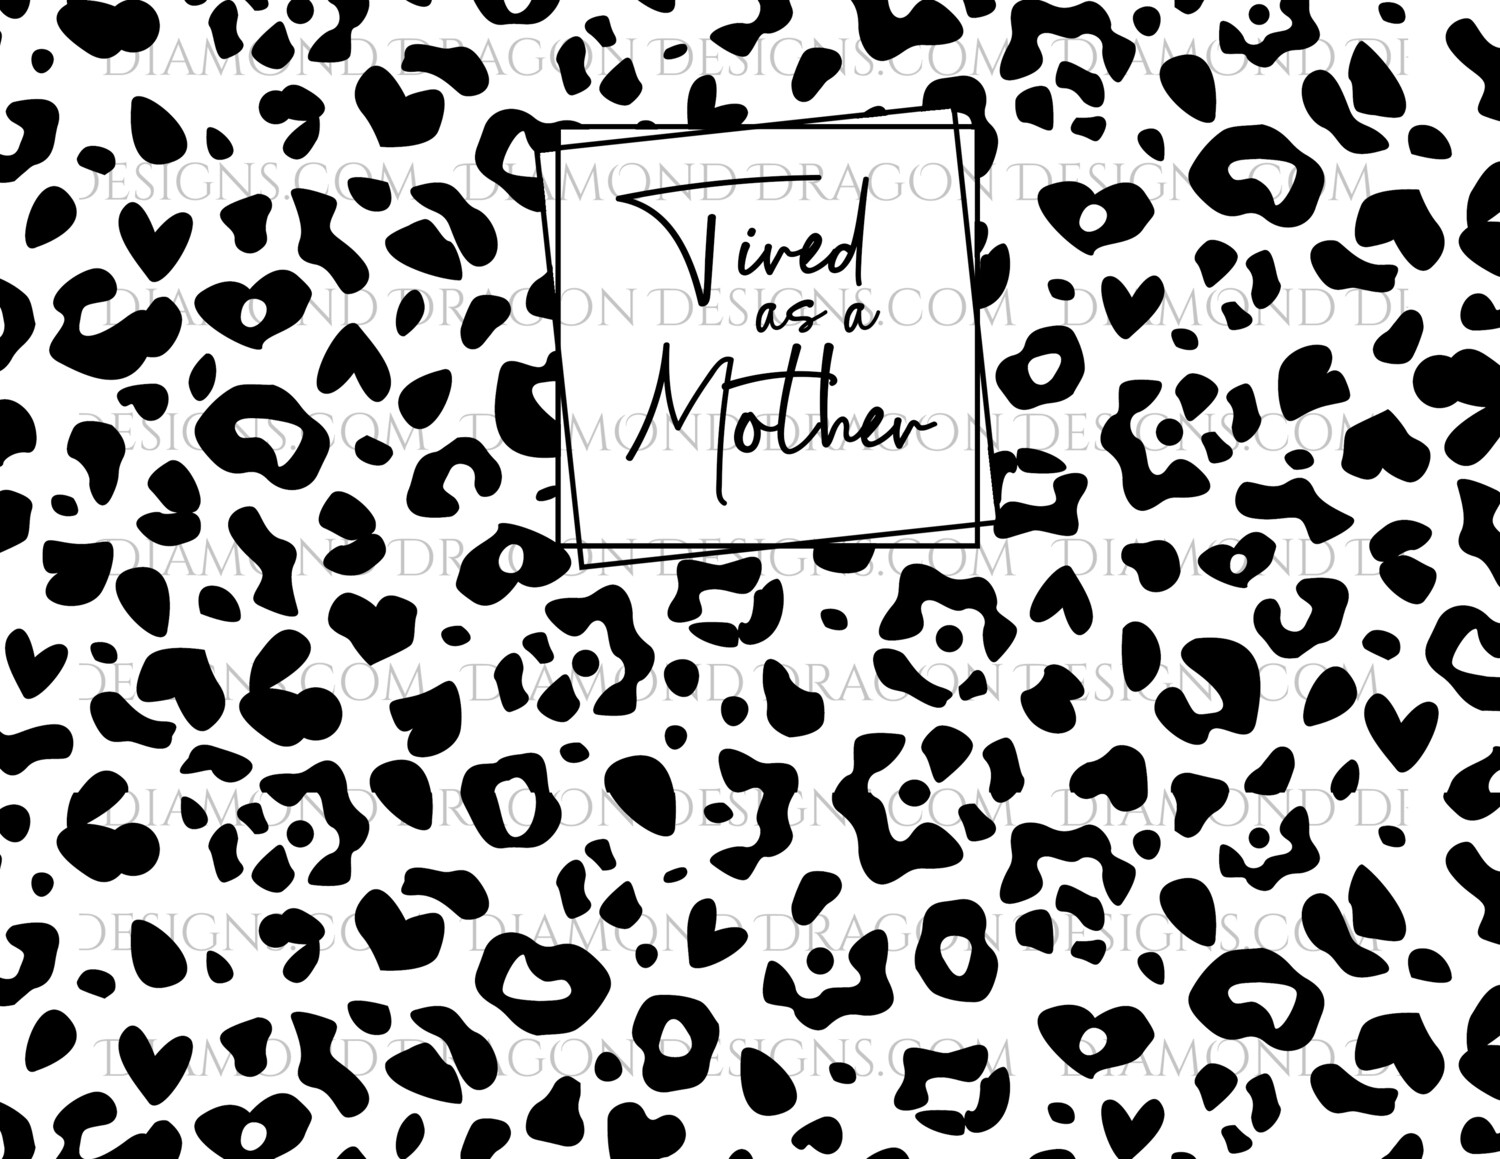 Full Page Design - Tired as a Mother, Black Frame, Leopard Spots, Animal Print, Full Wrap, Digital Image